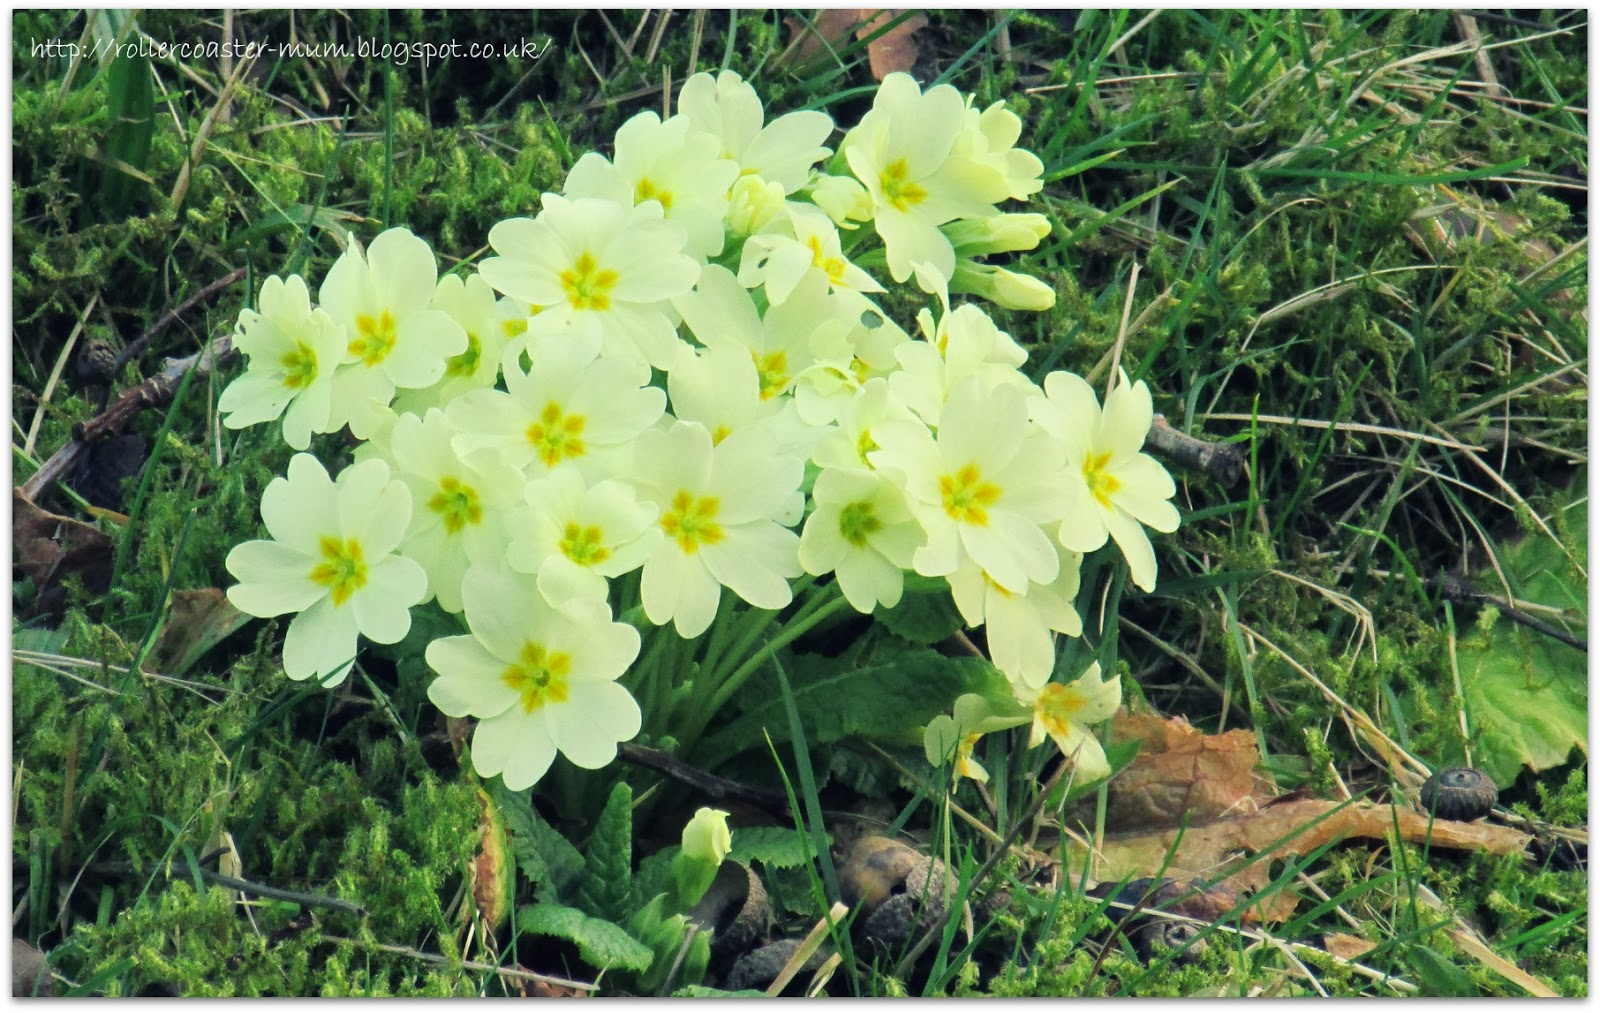 signs of spring, pretty yellow primroses